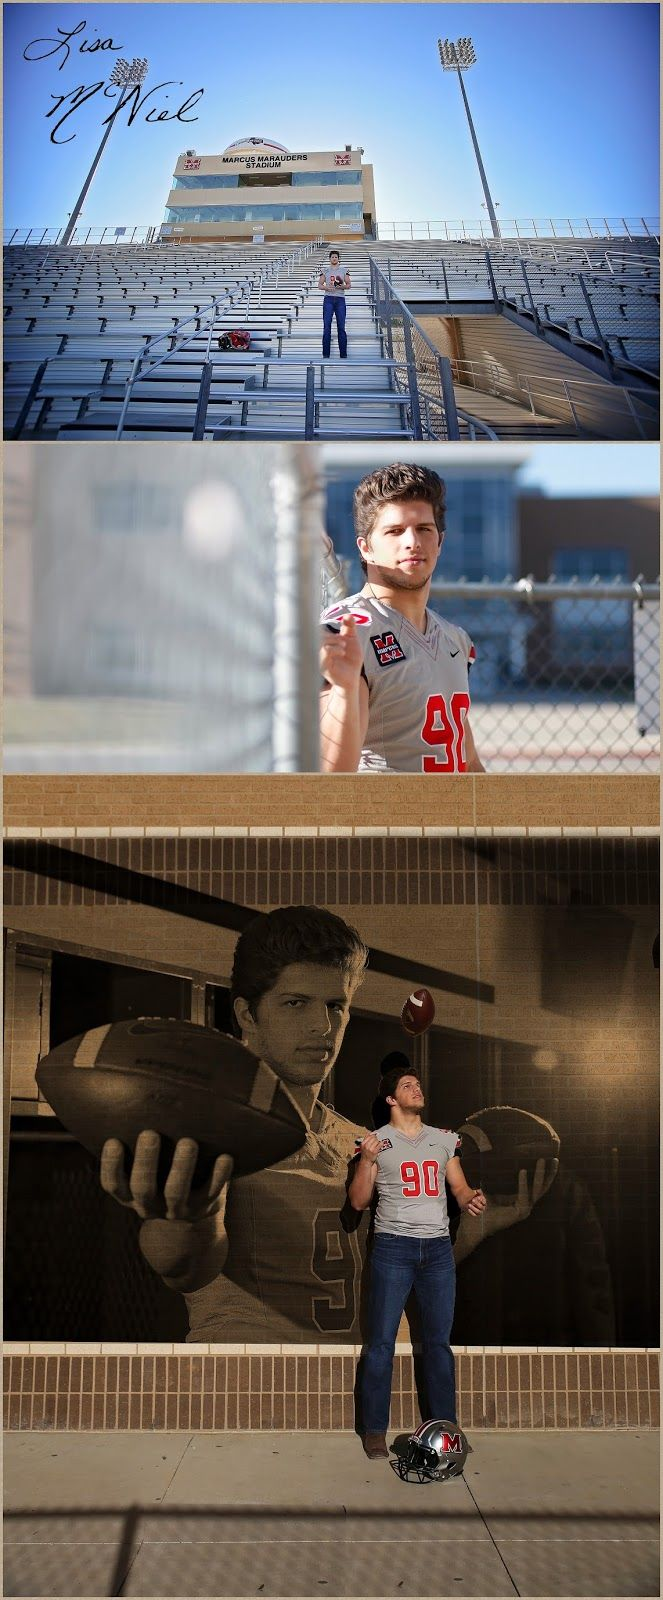 Senior pictures for guys, Click the pic for 25 more photos of handsome football player, senior photos, senior portraits, ideas for football, Flower Mound, Dallas photographer Lisa McNiel